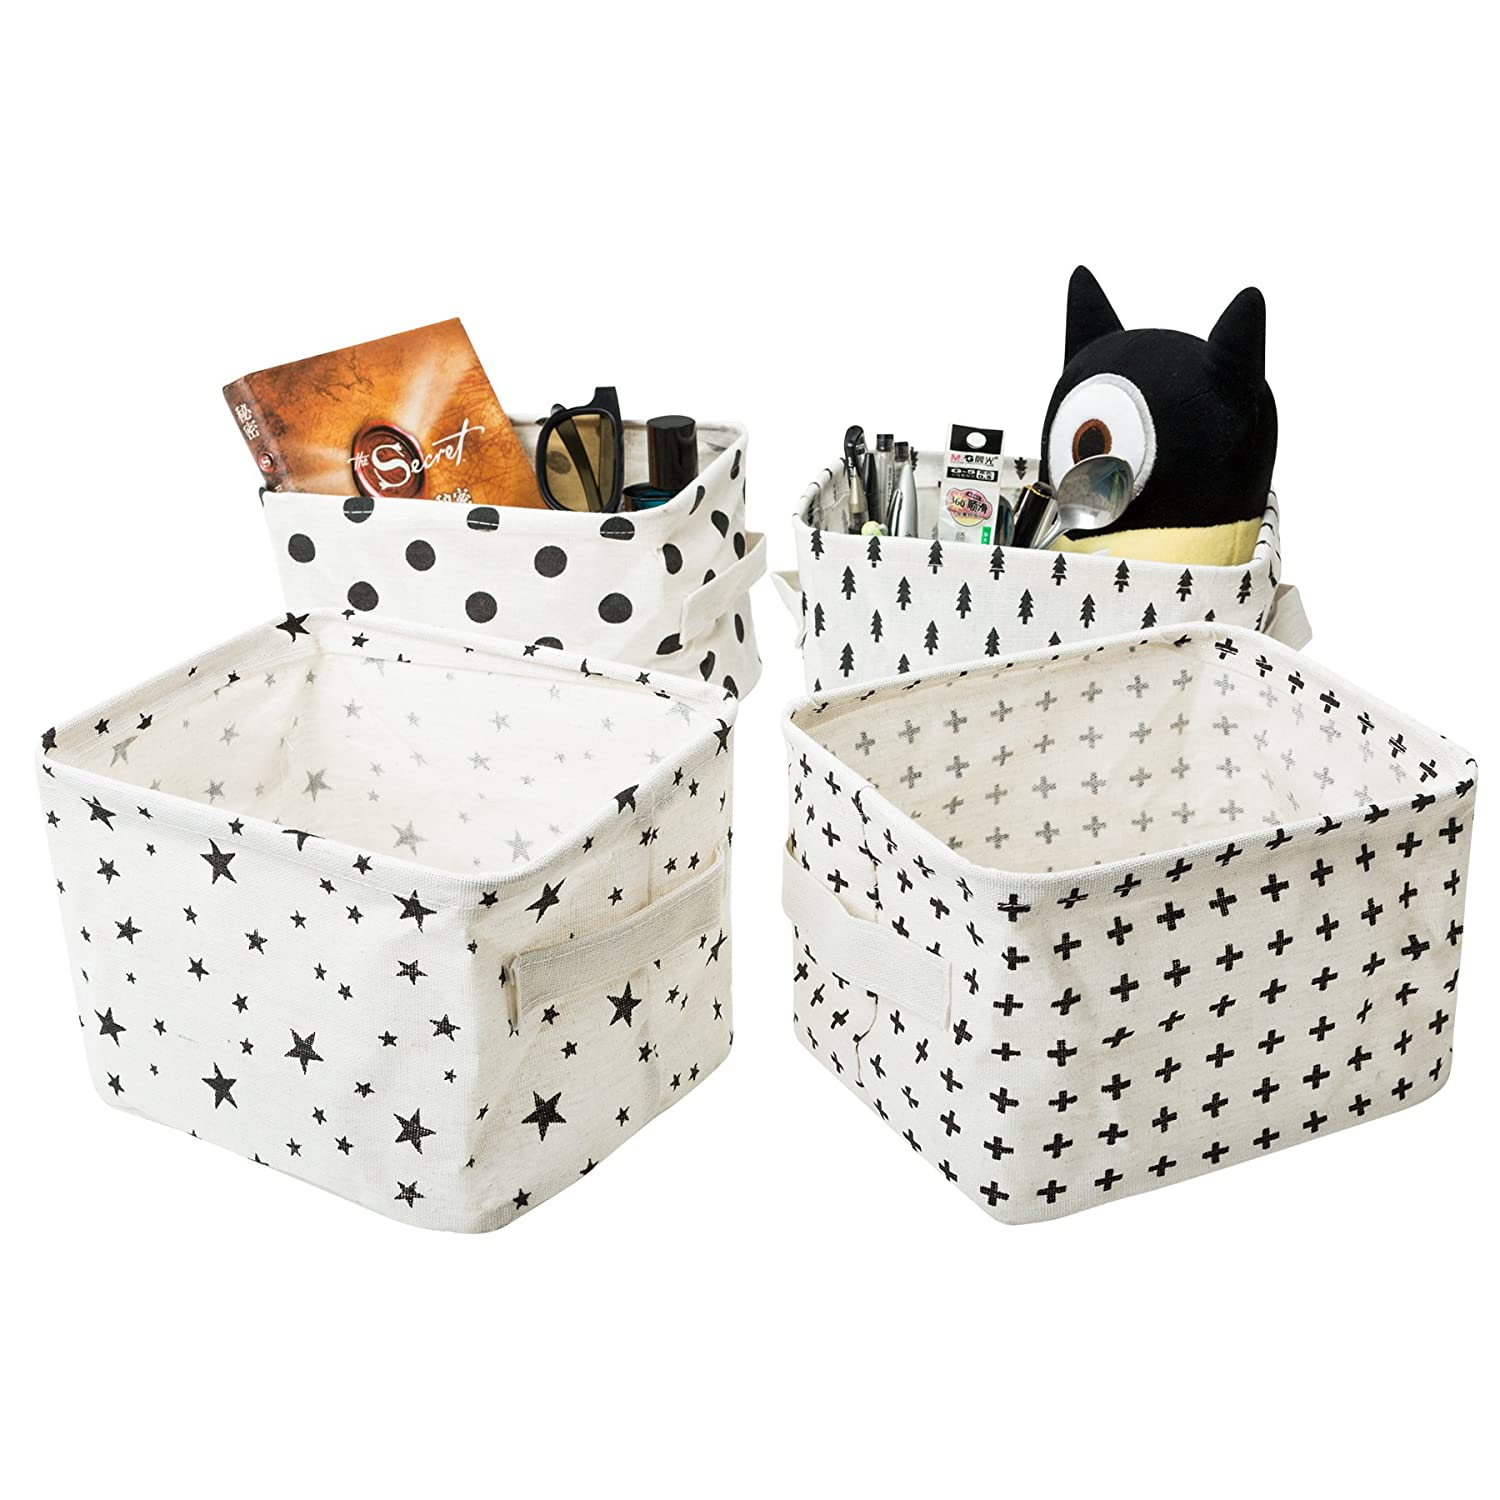 Zonyon Small Canvas Storage Bins, Mini Cute Foldable Fabric Baby Storage Basket,Star Nursery Container with Handle for Toys,Makeup,Keys,Shelves,Desk,Liitle Items,Black and White,4 Packs